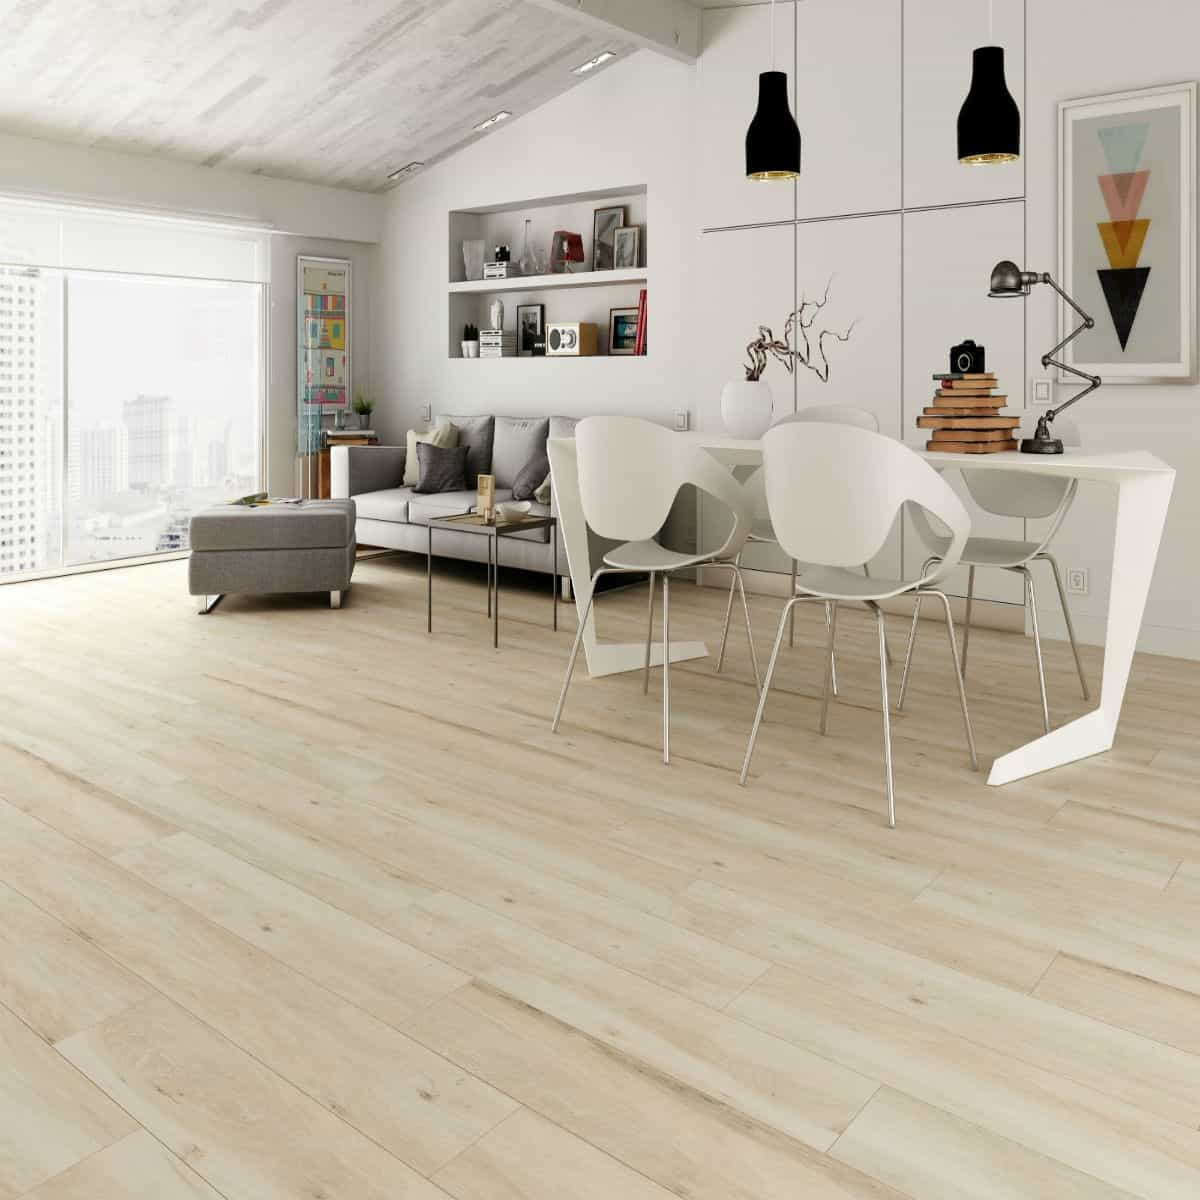 Atelier beige right price tiles - Suelo imitacion parquet ...